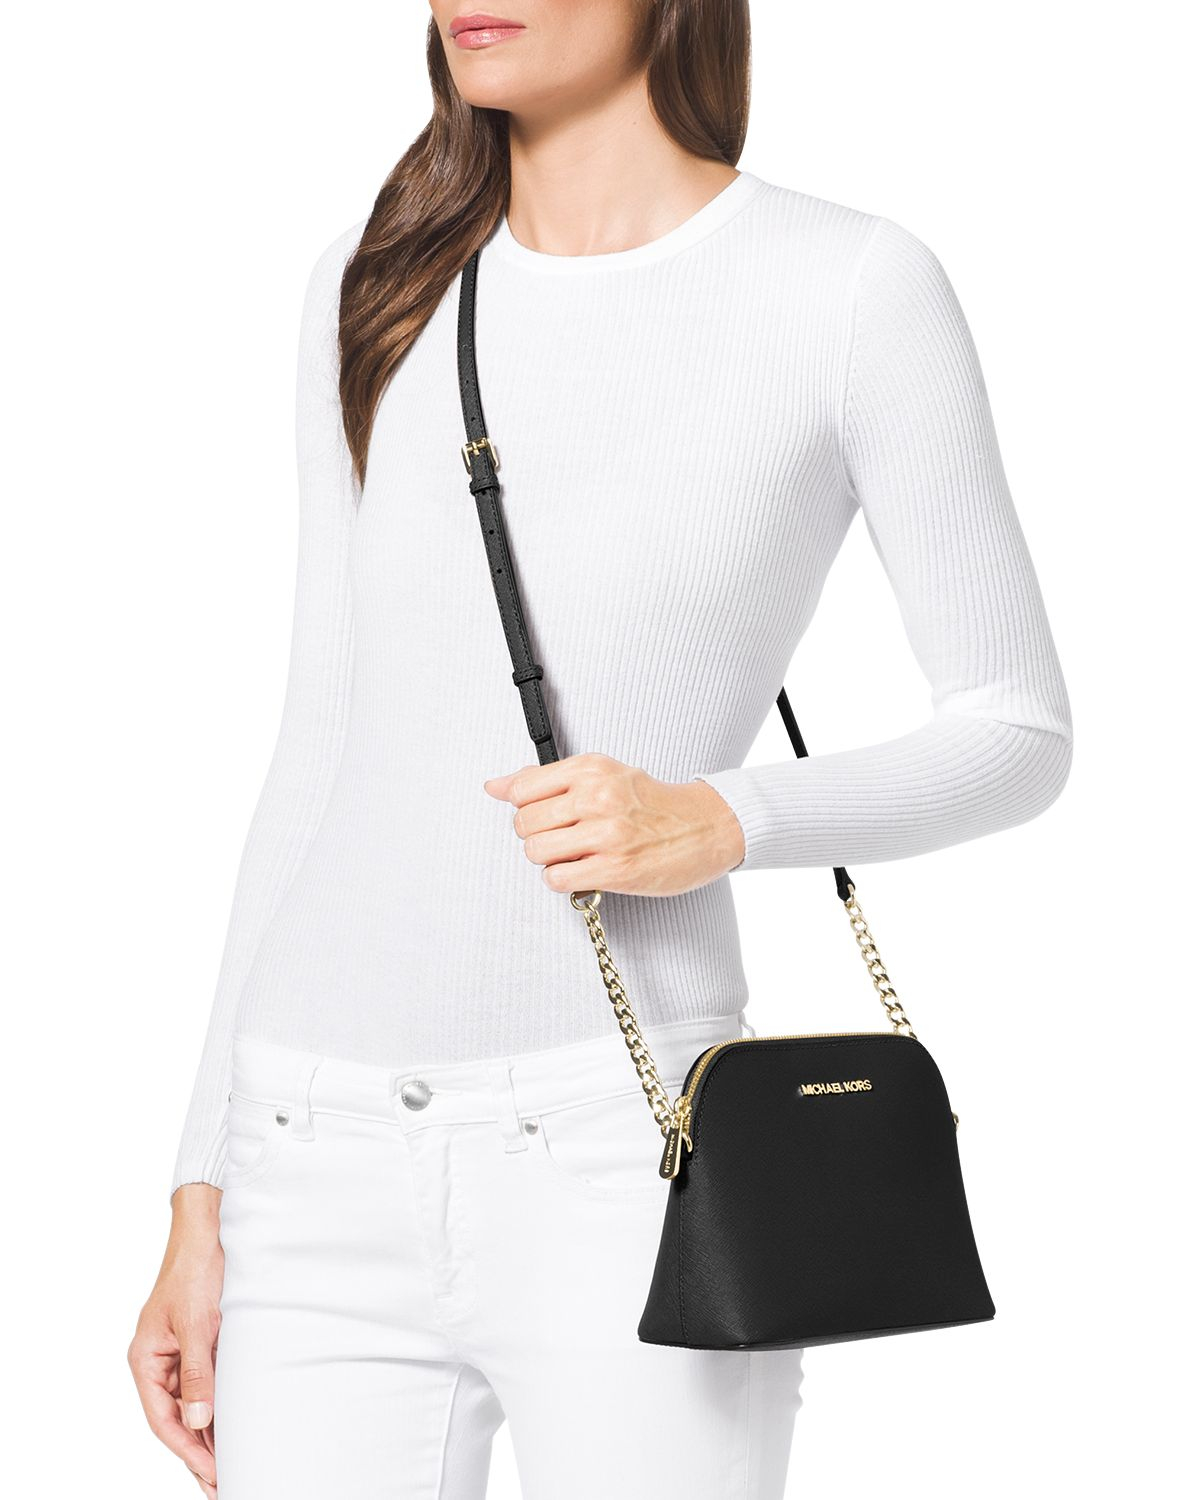 d79886fcef26 Gallery. Previously sold at: Bloomingdale's · Women's Michael Kors Cindy